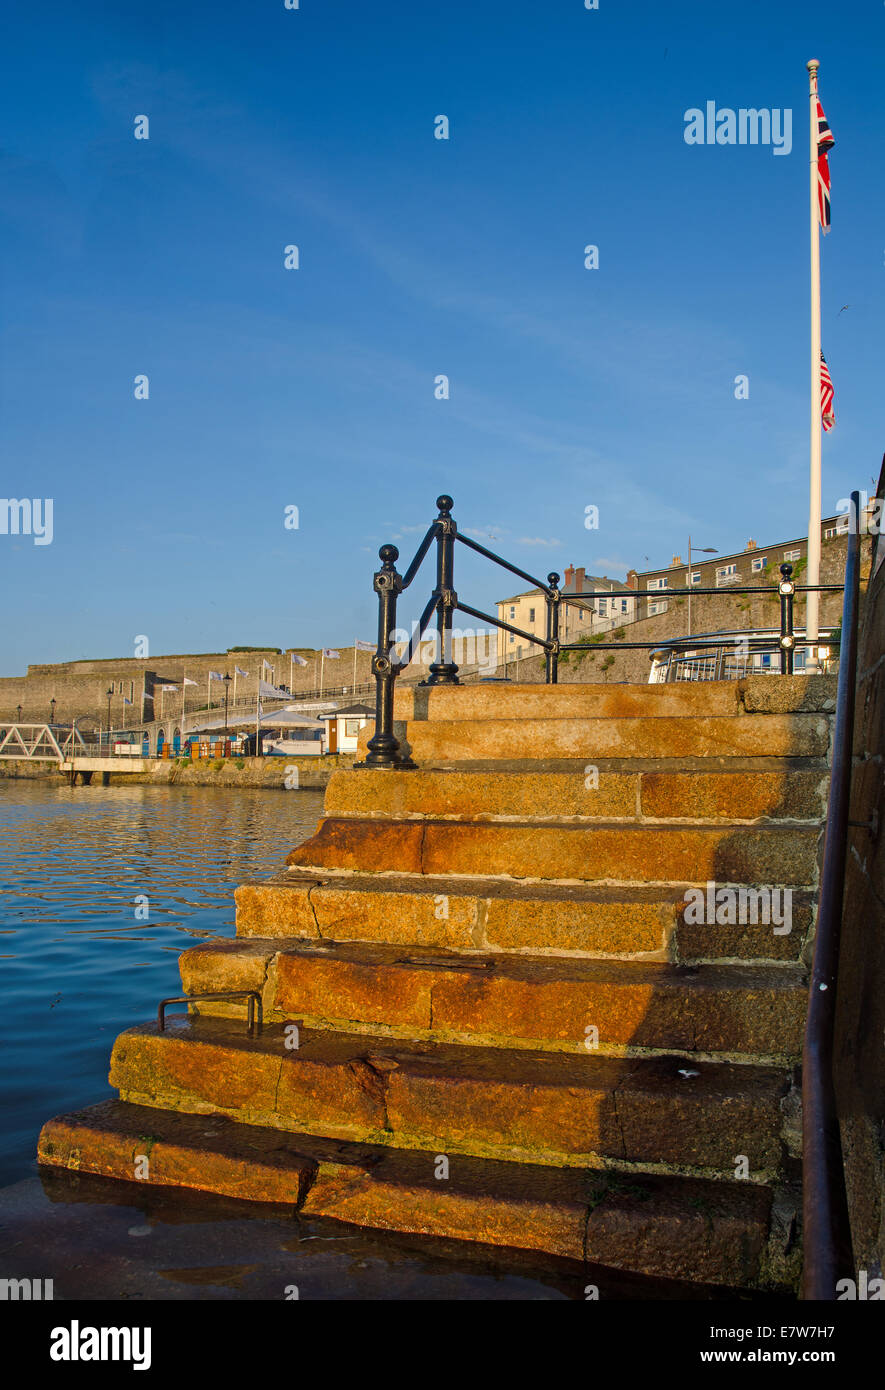 Morgensonne auf der Mayflower in Plymouth, Devon. Stockbild